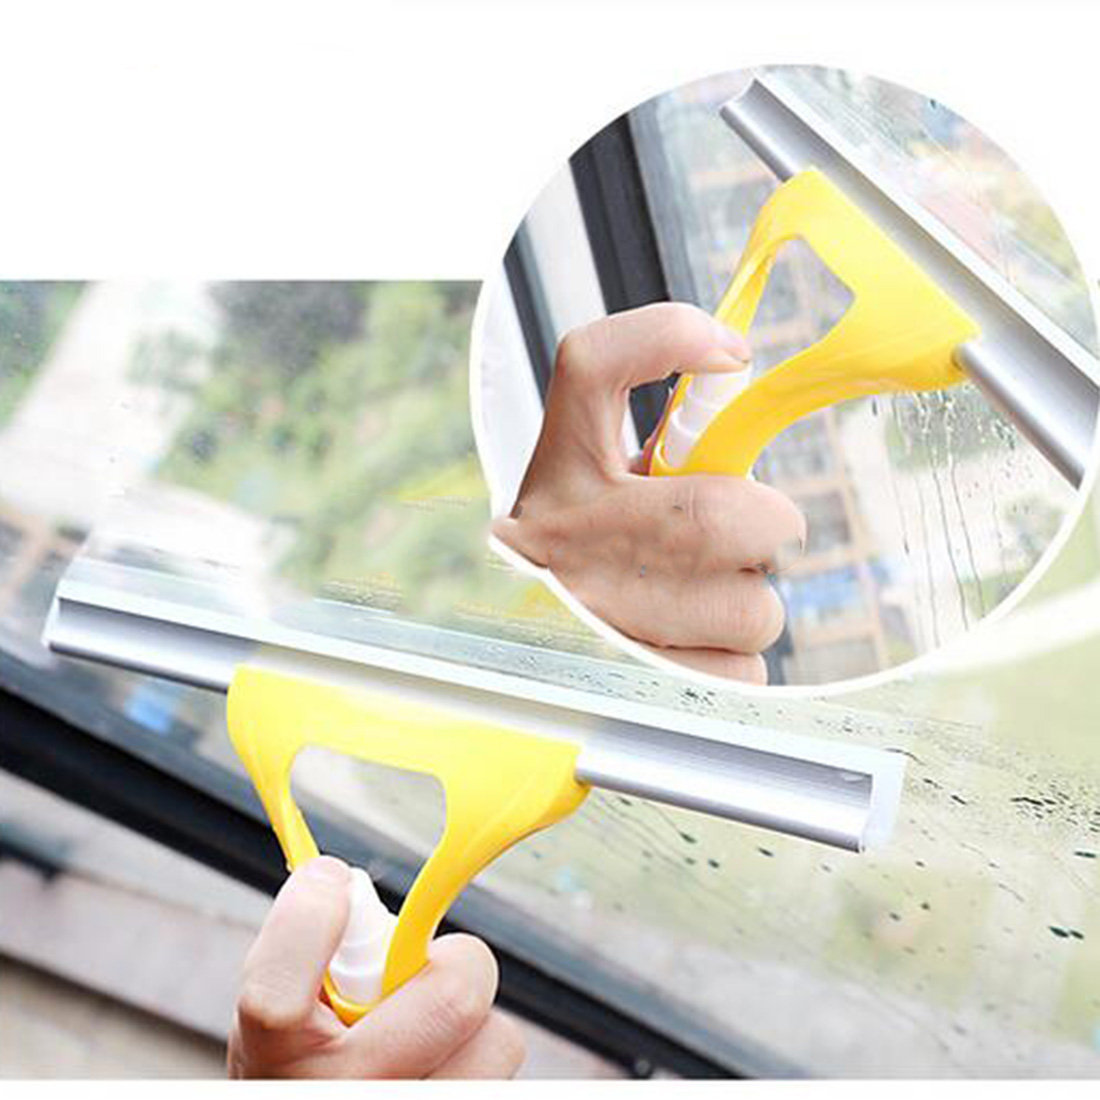 New Practical Washing brush Magic Spray type cleaning brush glass wiper window clean shave glass sponge car window cleaning